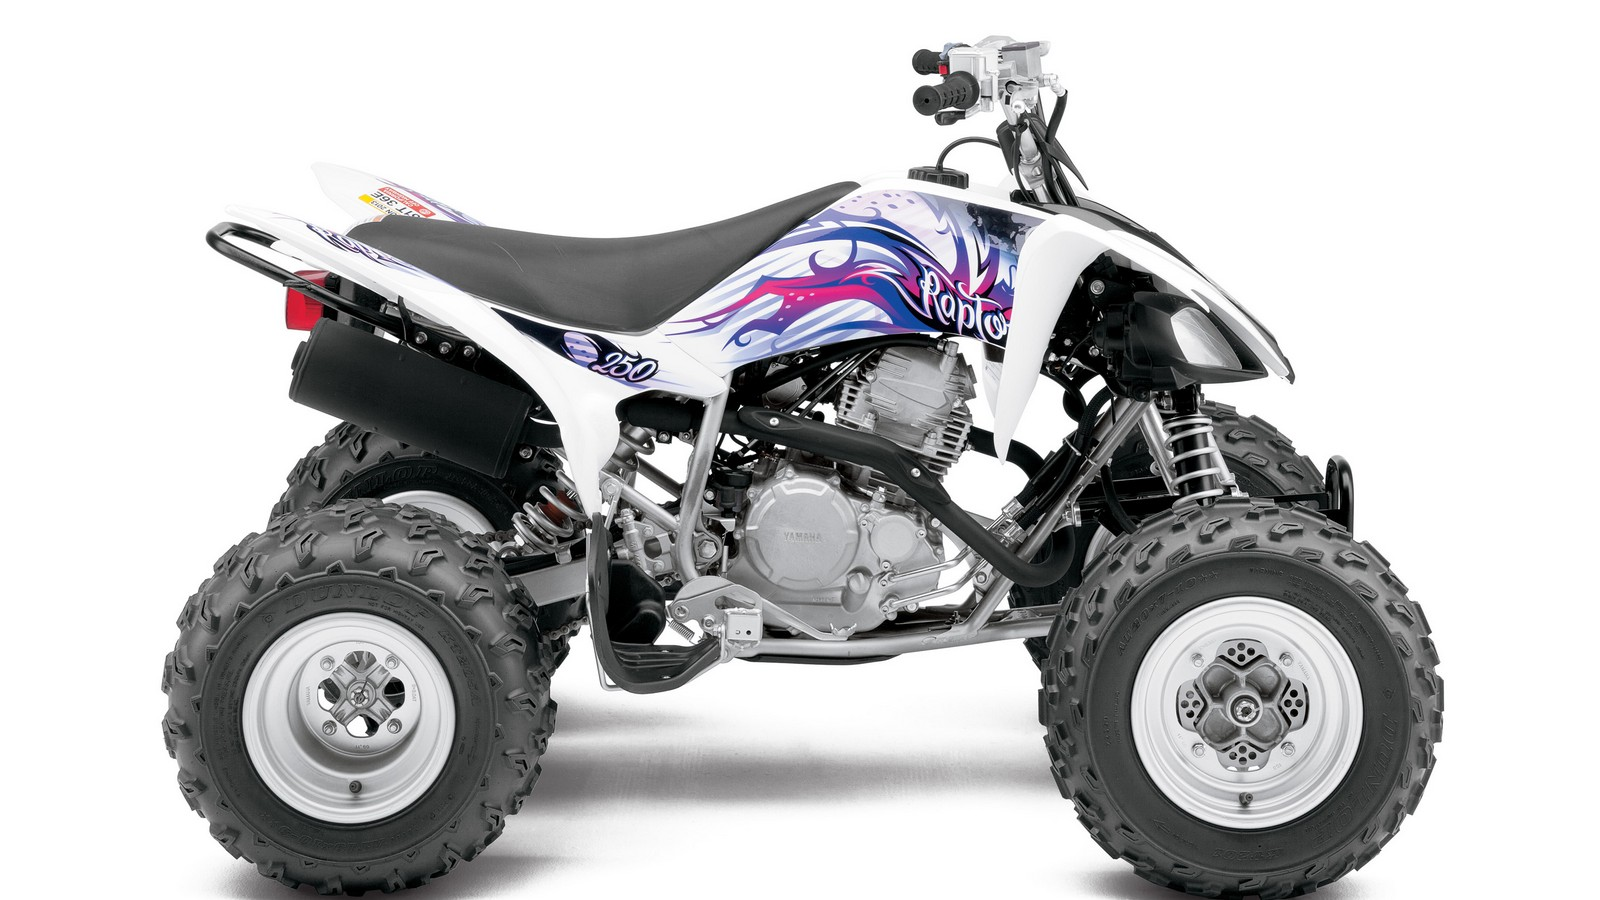 2013 yamaha raptor 250 review top speed for Yamaha raptor 250 price